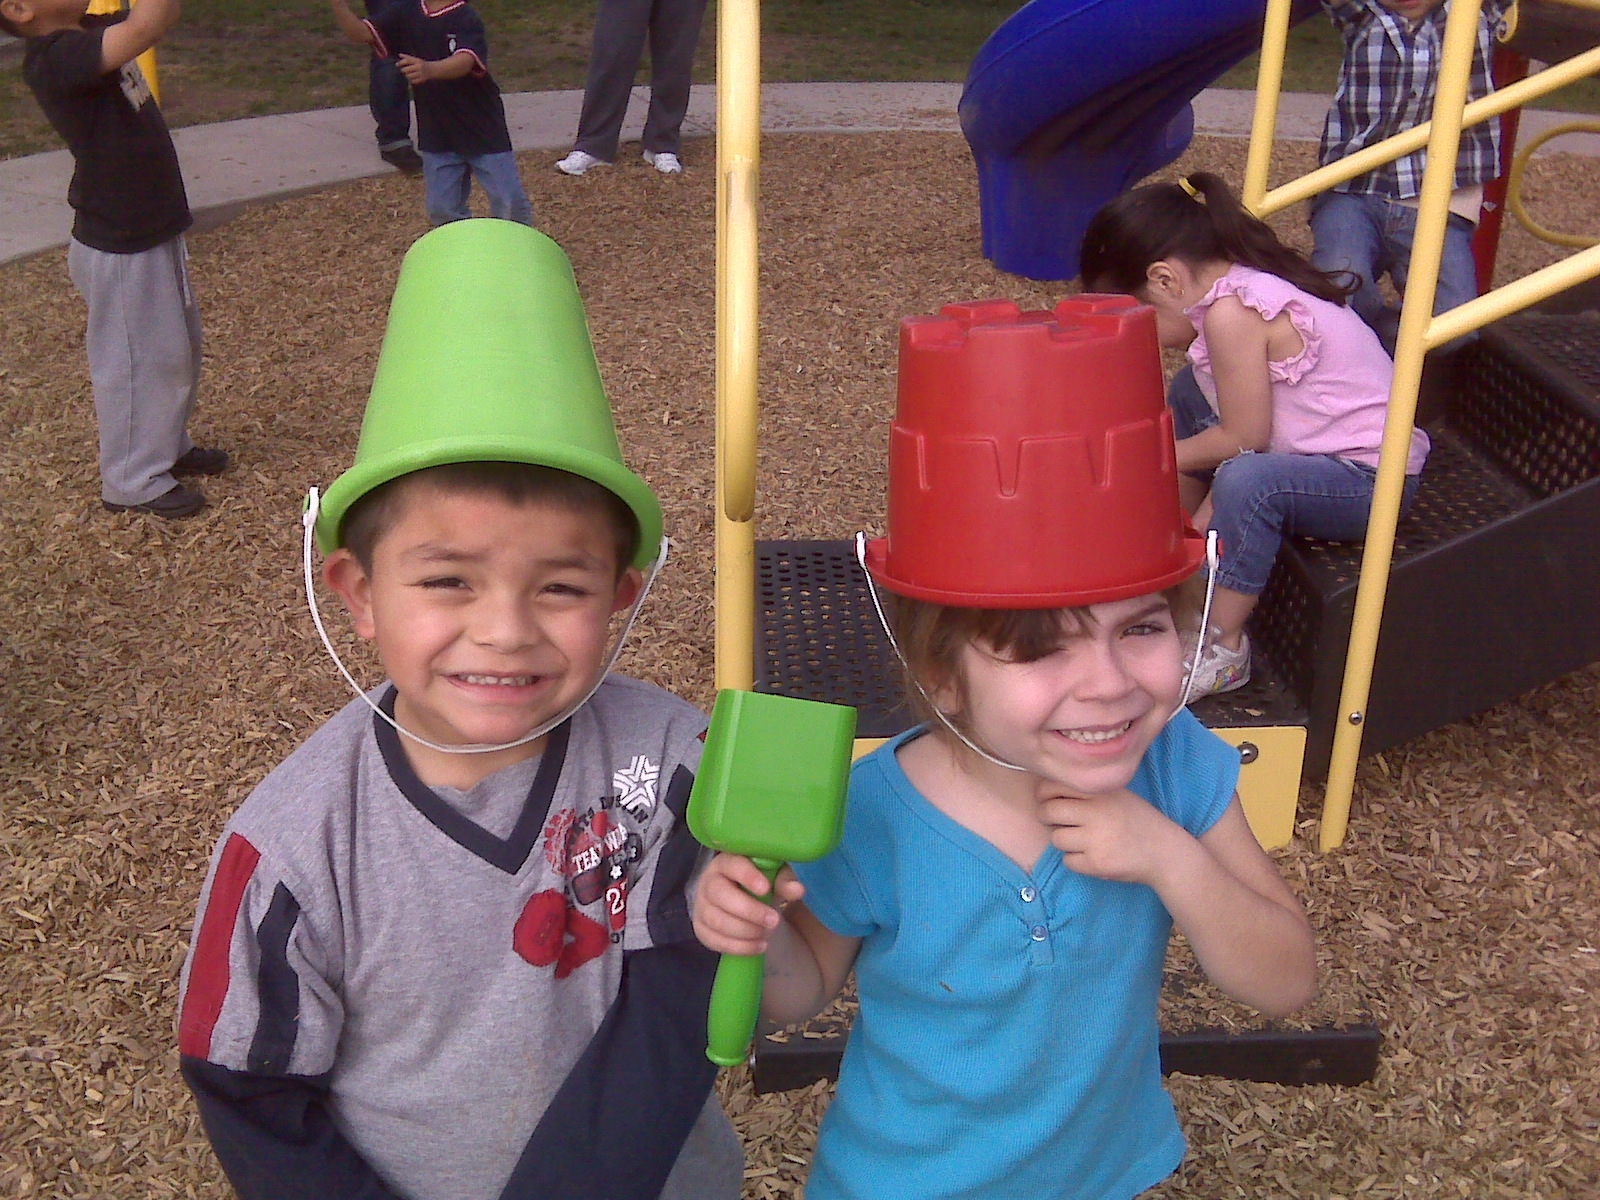 Two young children playing with buckets on their heads